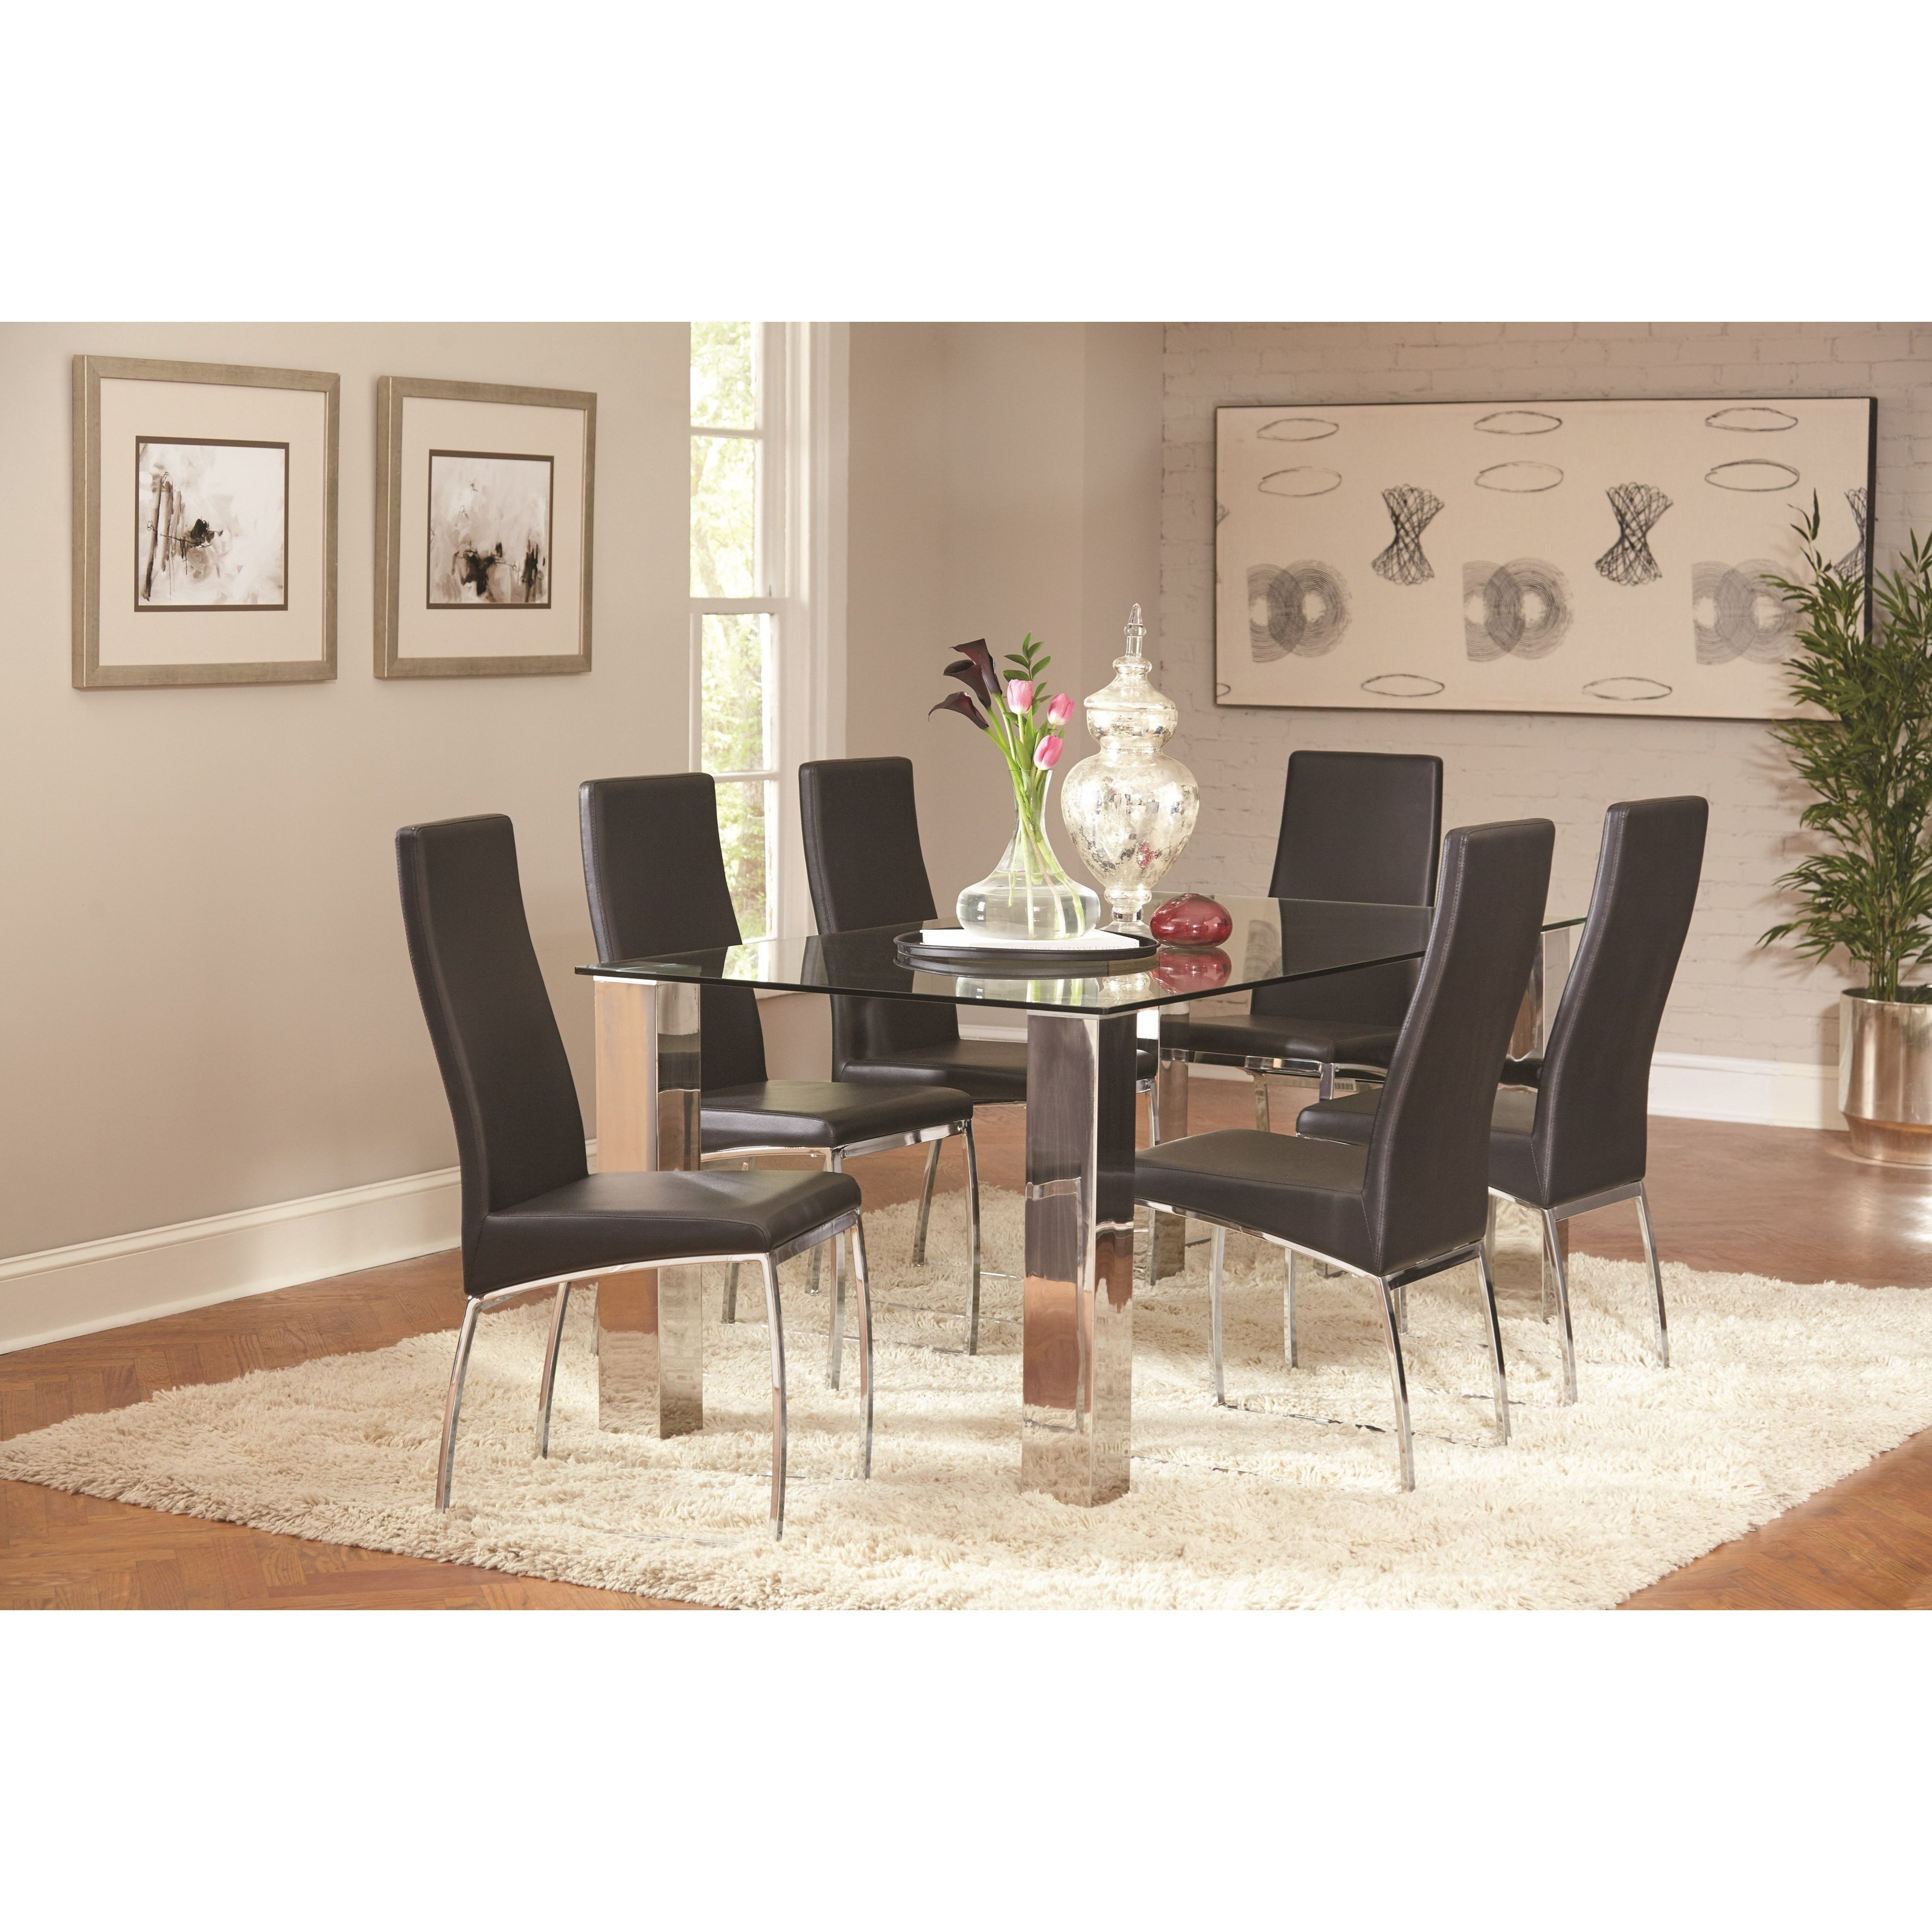 Coaster Bellini Dining Table and Chair Set - Item Number: 107111+6x107112